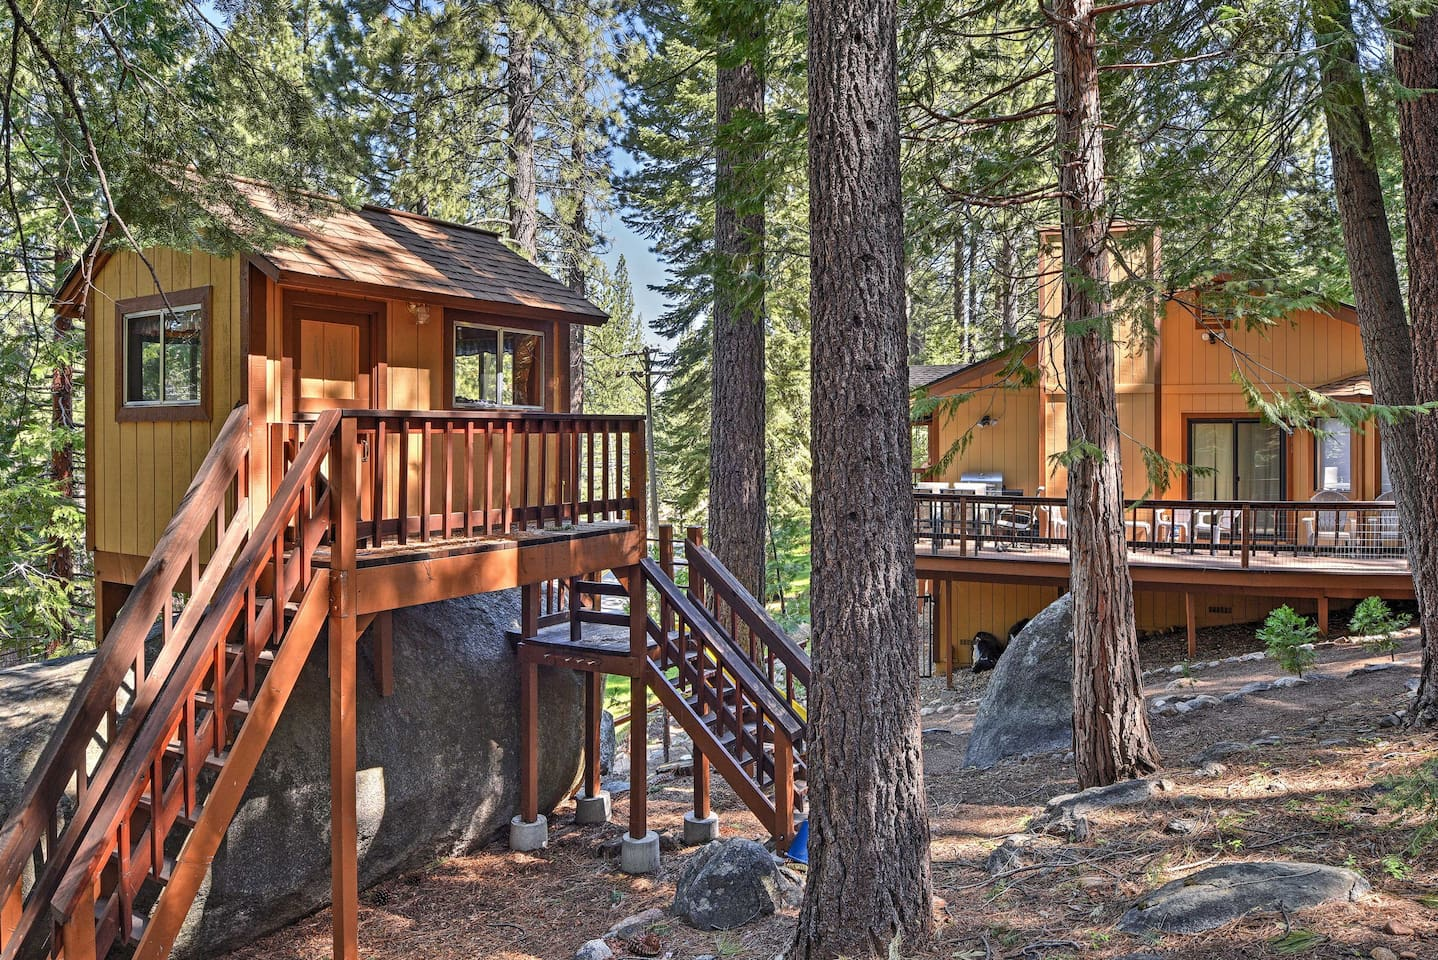 South Lake Tahoe welcomes to you to this 3-bed, 3-bath vacation rental house.